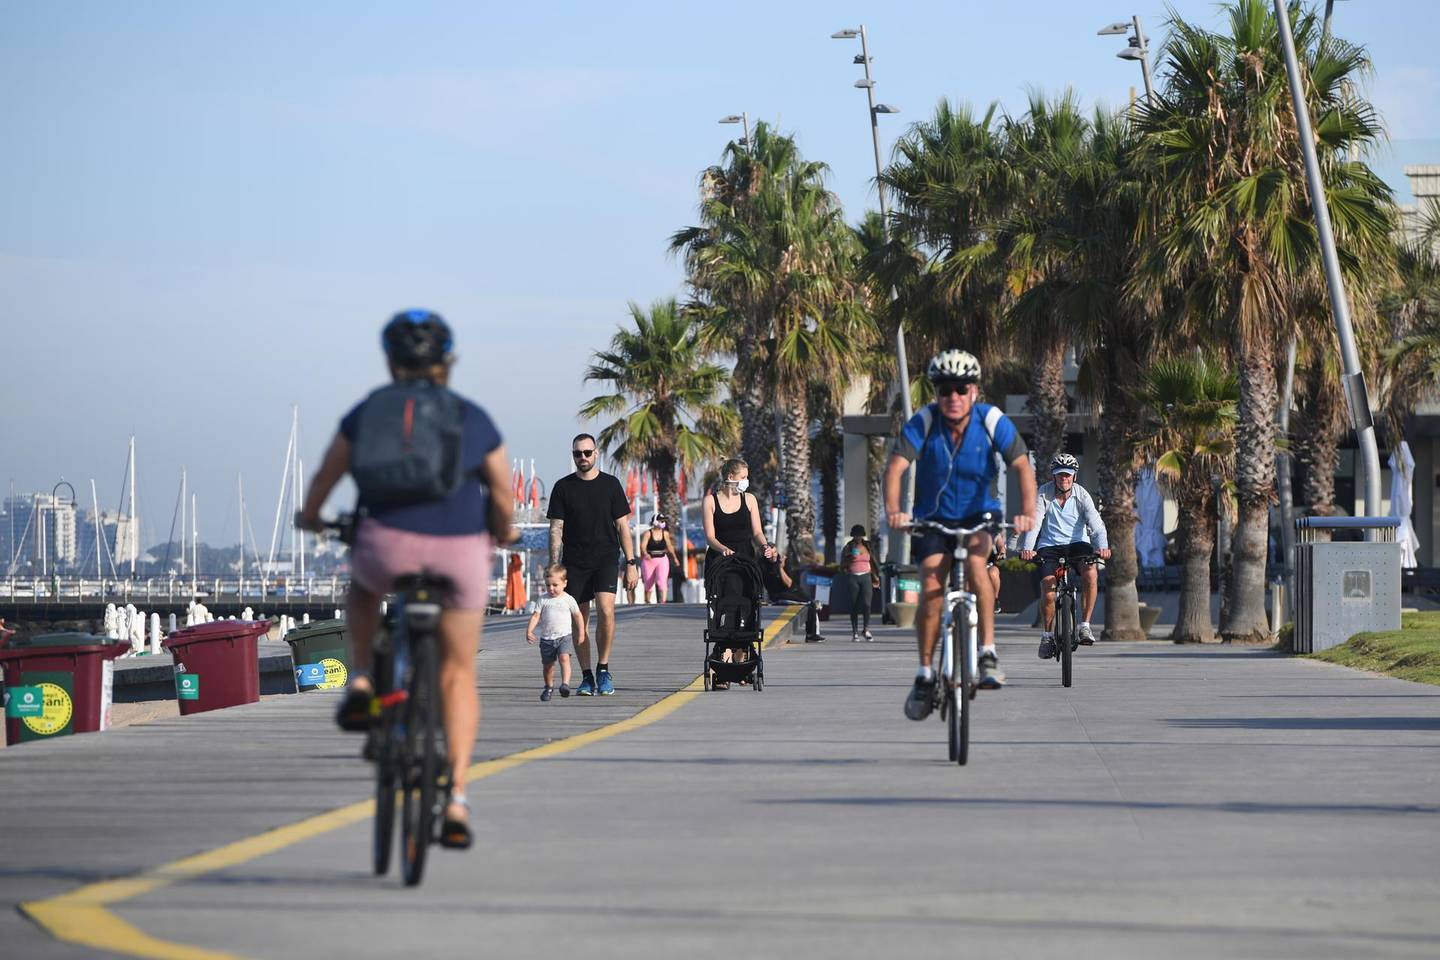 People walk and cycle at St. Kilda Beach in Melbourne, Australia, Wednesday, Feb. 17, 2021. Melbourne, Australia's second-largest city, will relax its third lockdown restrictions after authorities contained the spread of a COVID-19 cluster centered on hotel quarantine. (Erik Anderson/AAP Image via AP)